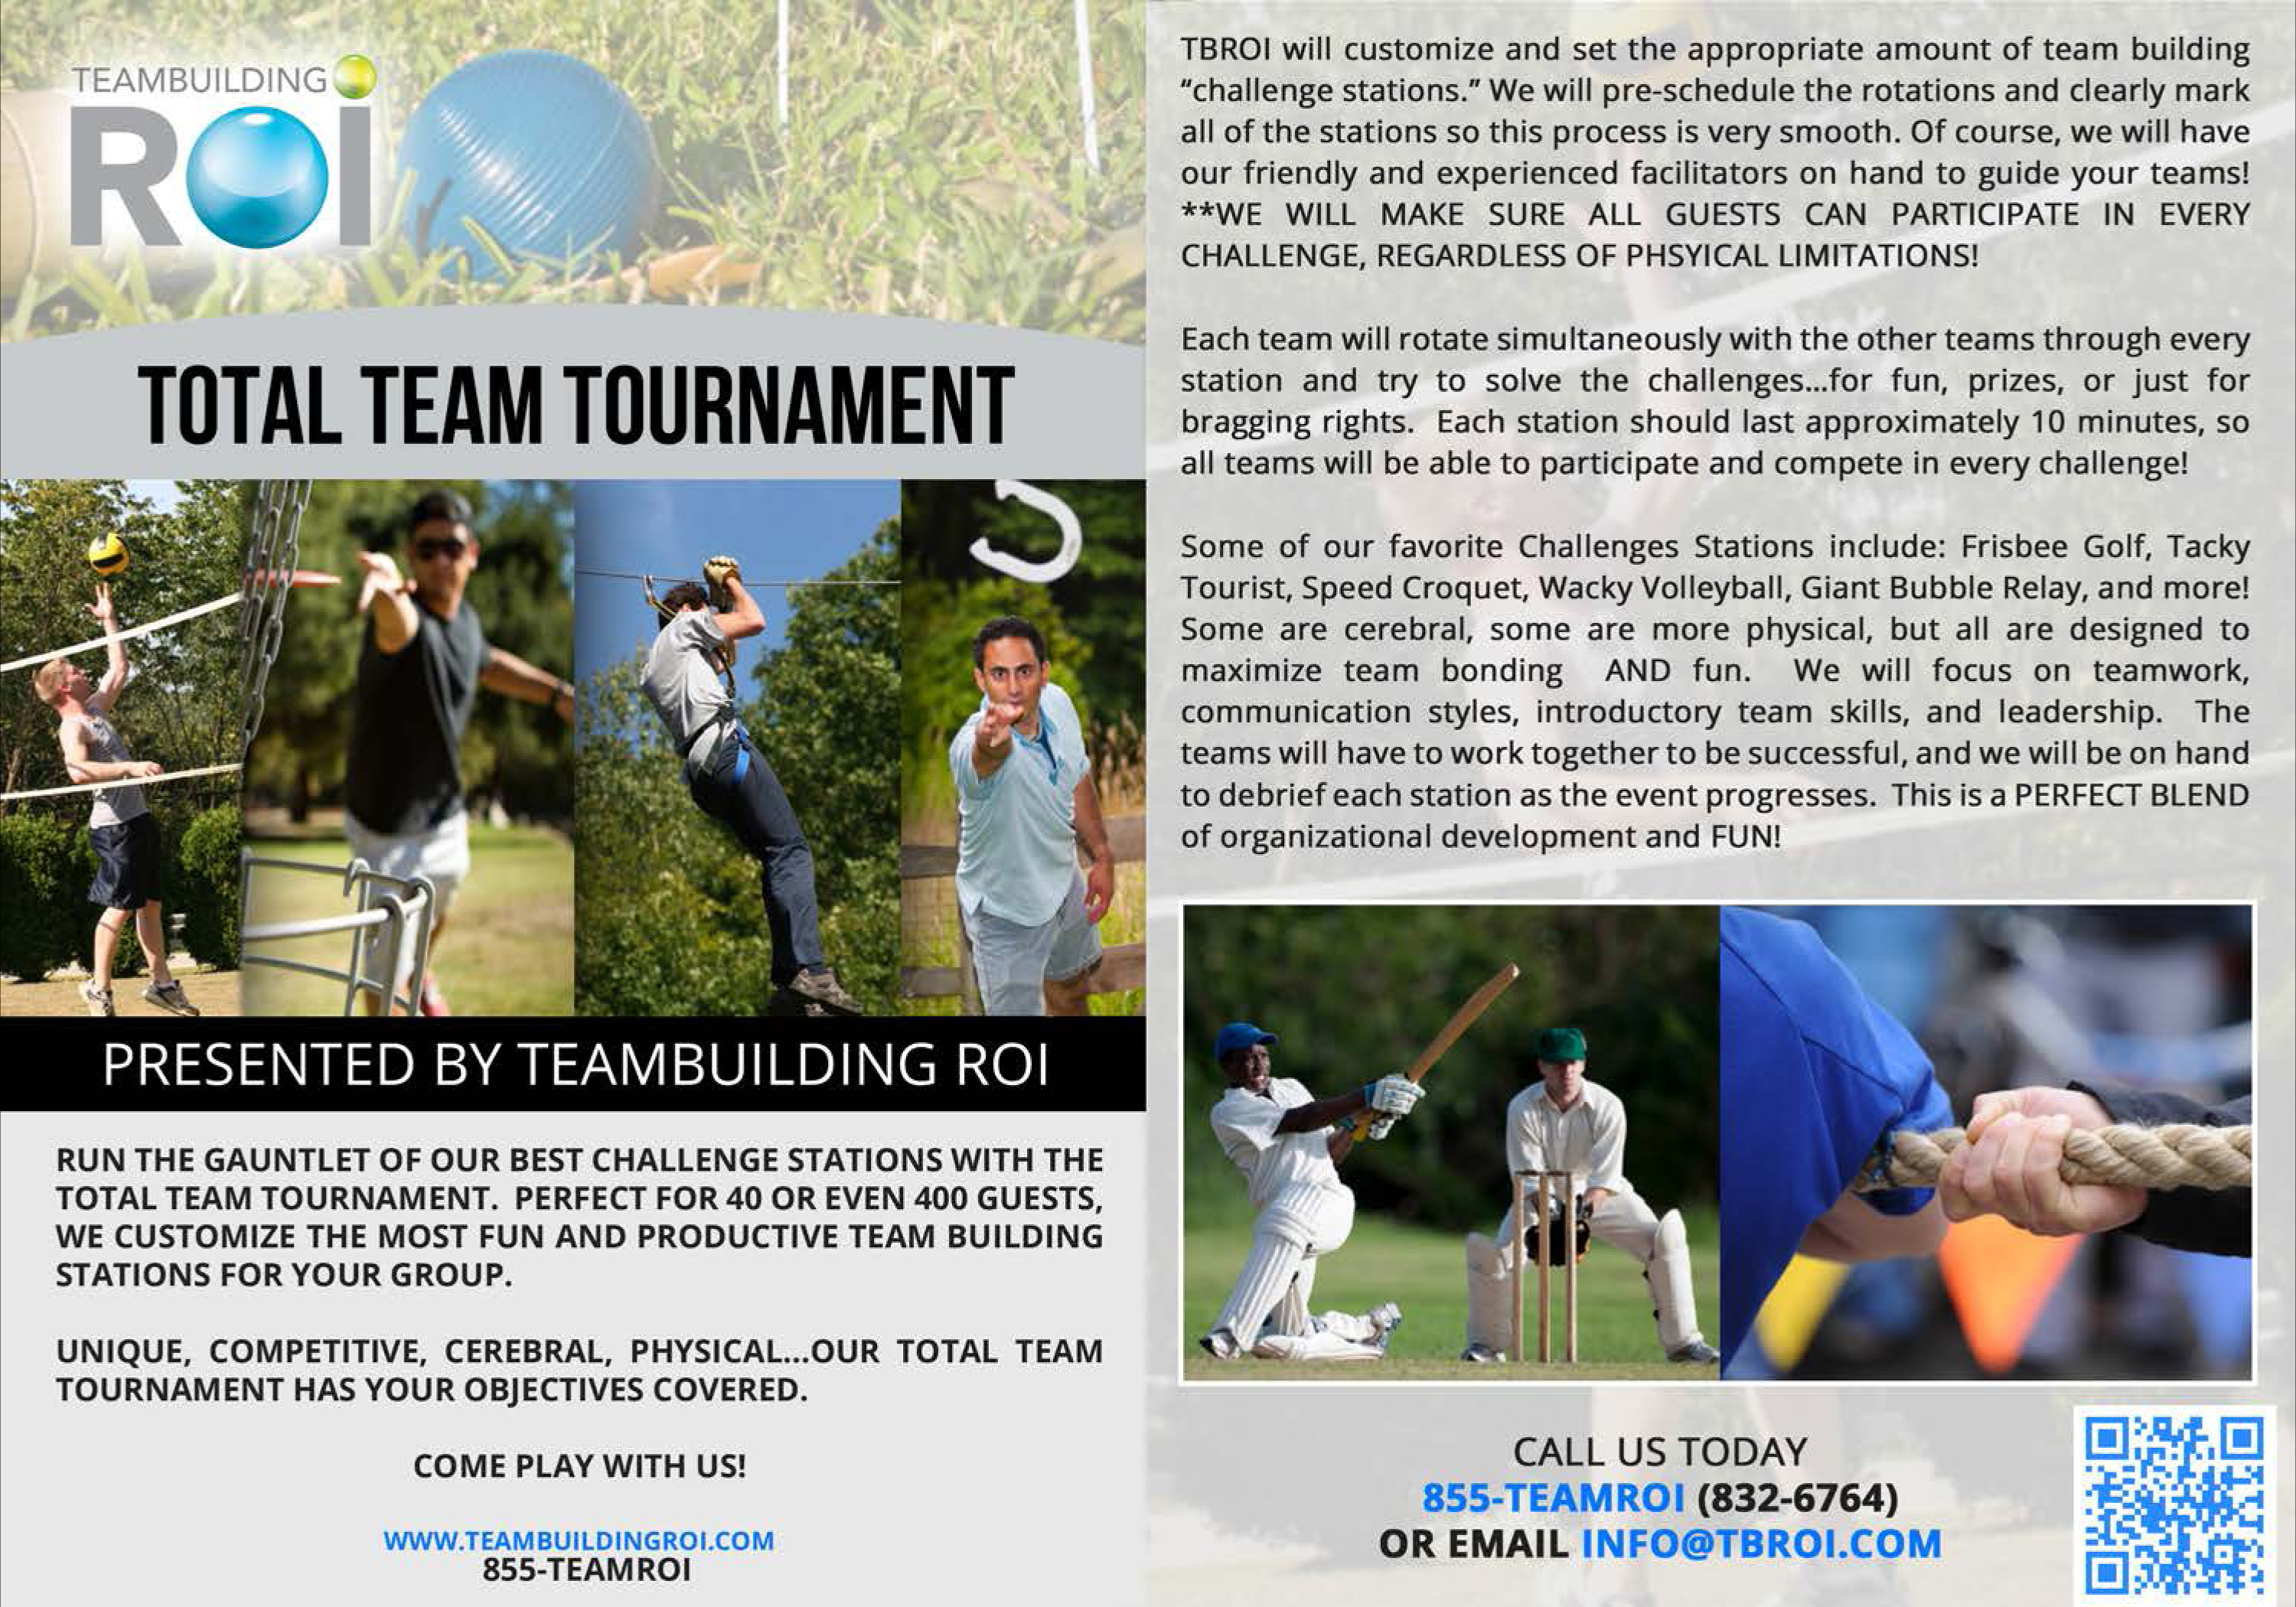 Team Building ROI | Bay Area Team Building and Corporate Events